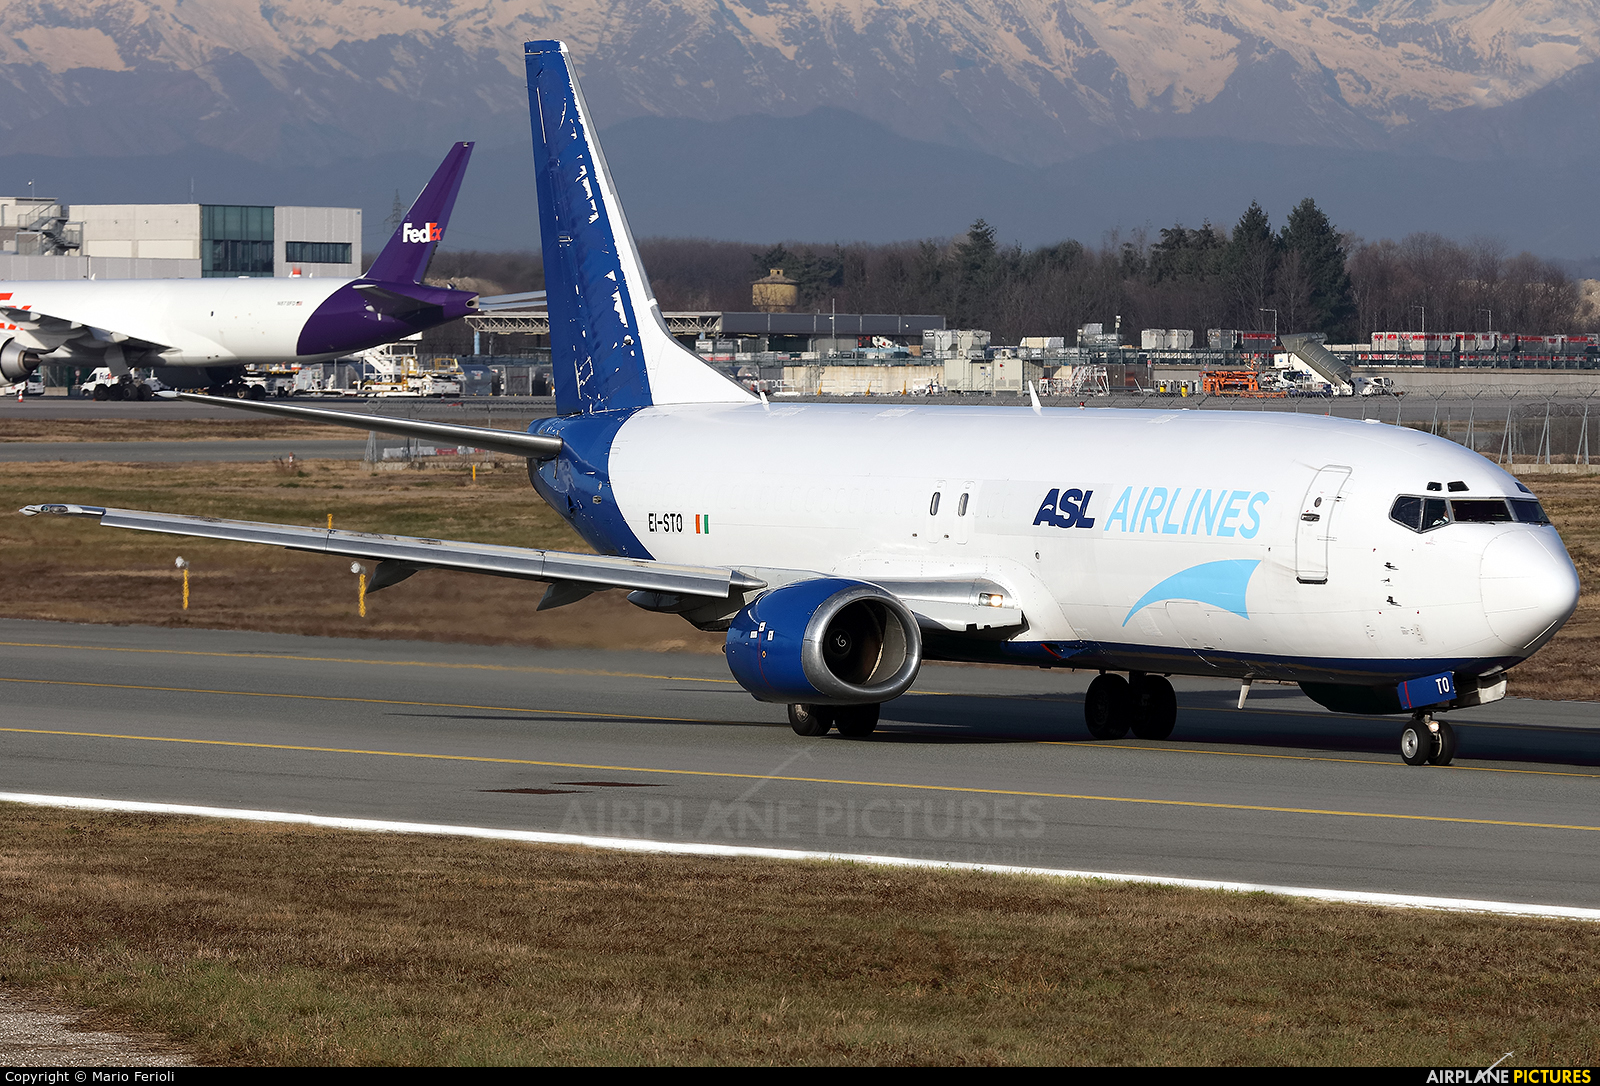 ASL Airlines EI-STO aircraft at Milan - Malpensa